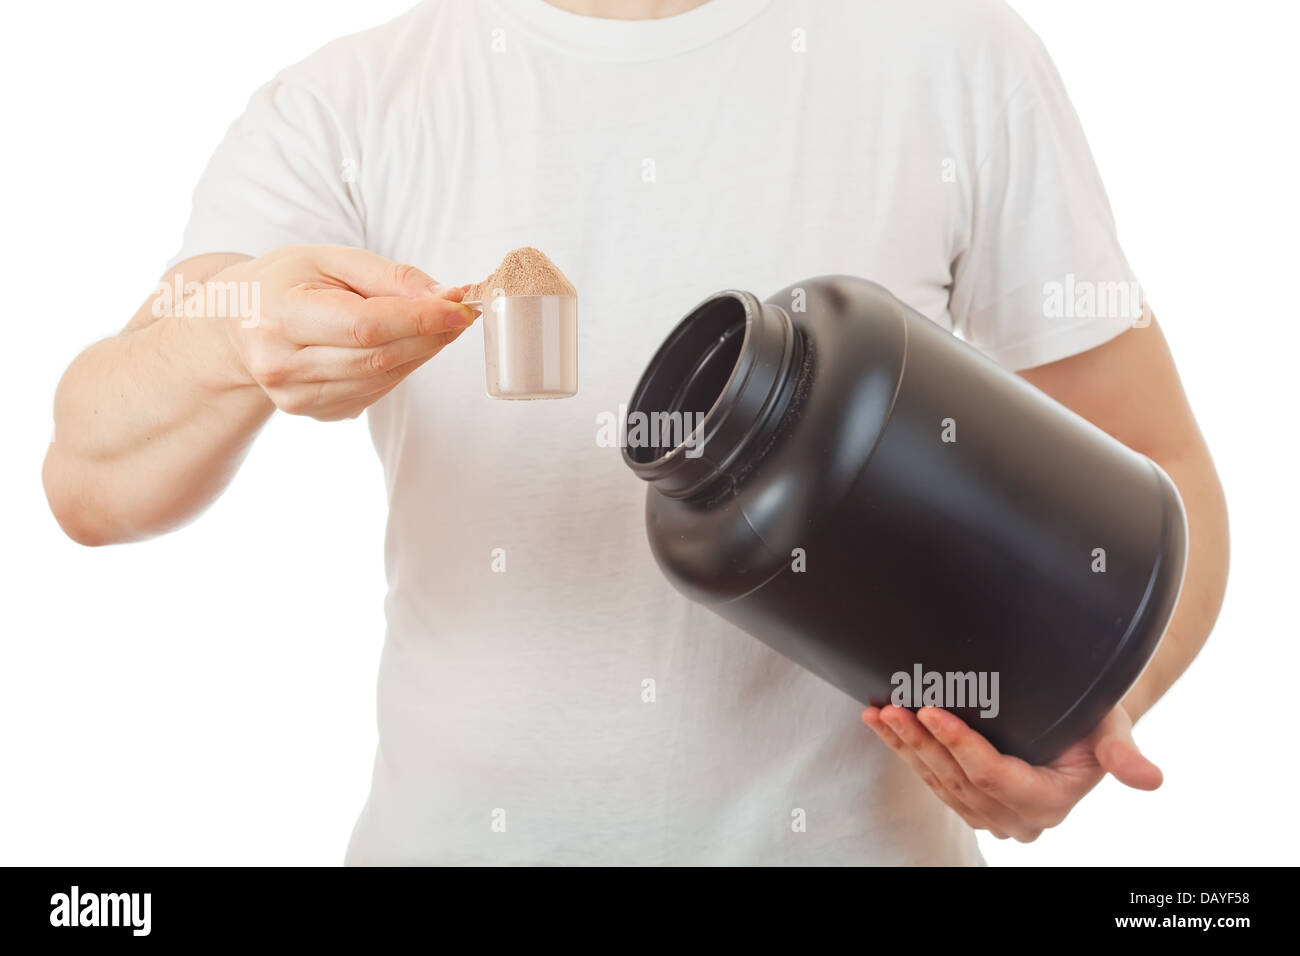 Man's  holding scoop of  chocolate whey protein shake - Stock Image